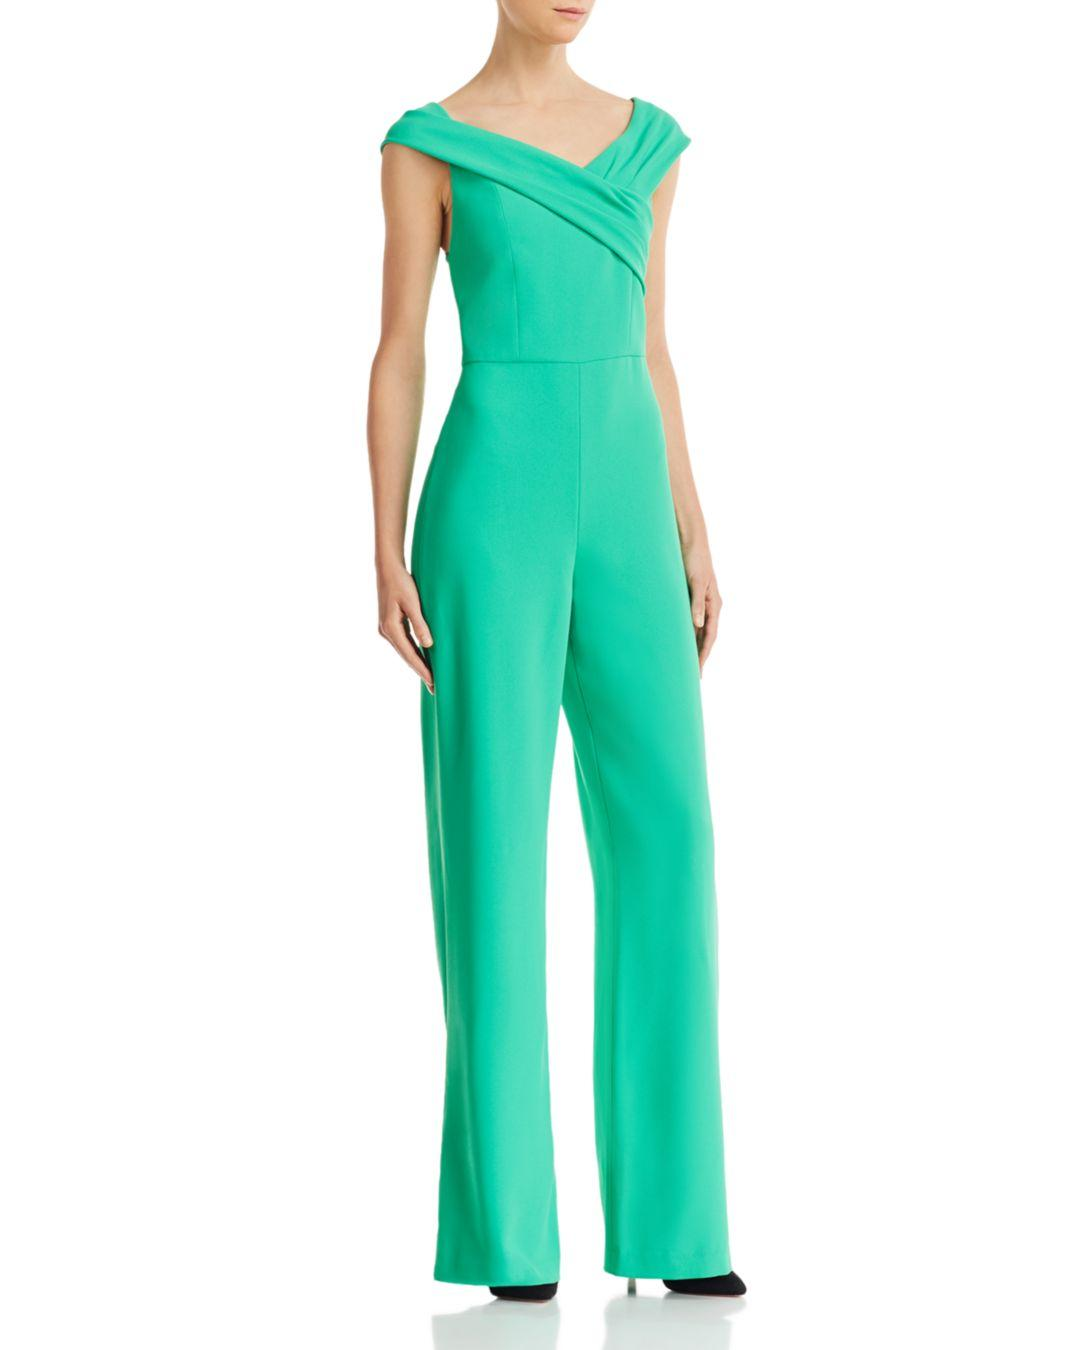 a700a952361 Lyst - Alice + Olivia Alice + Olivia Kaye Wide-leg Jumpsuit in Green